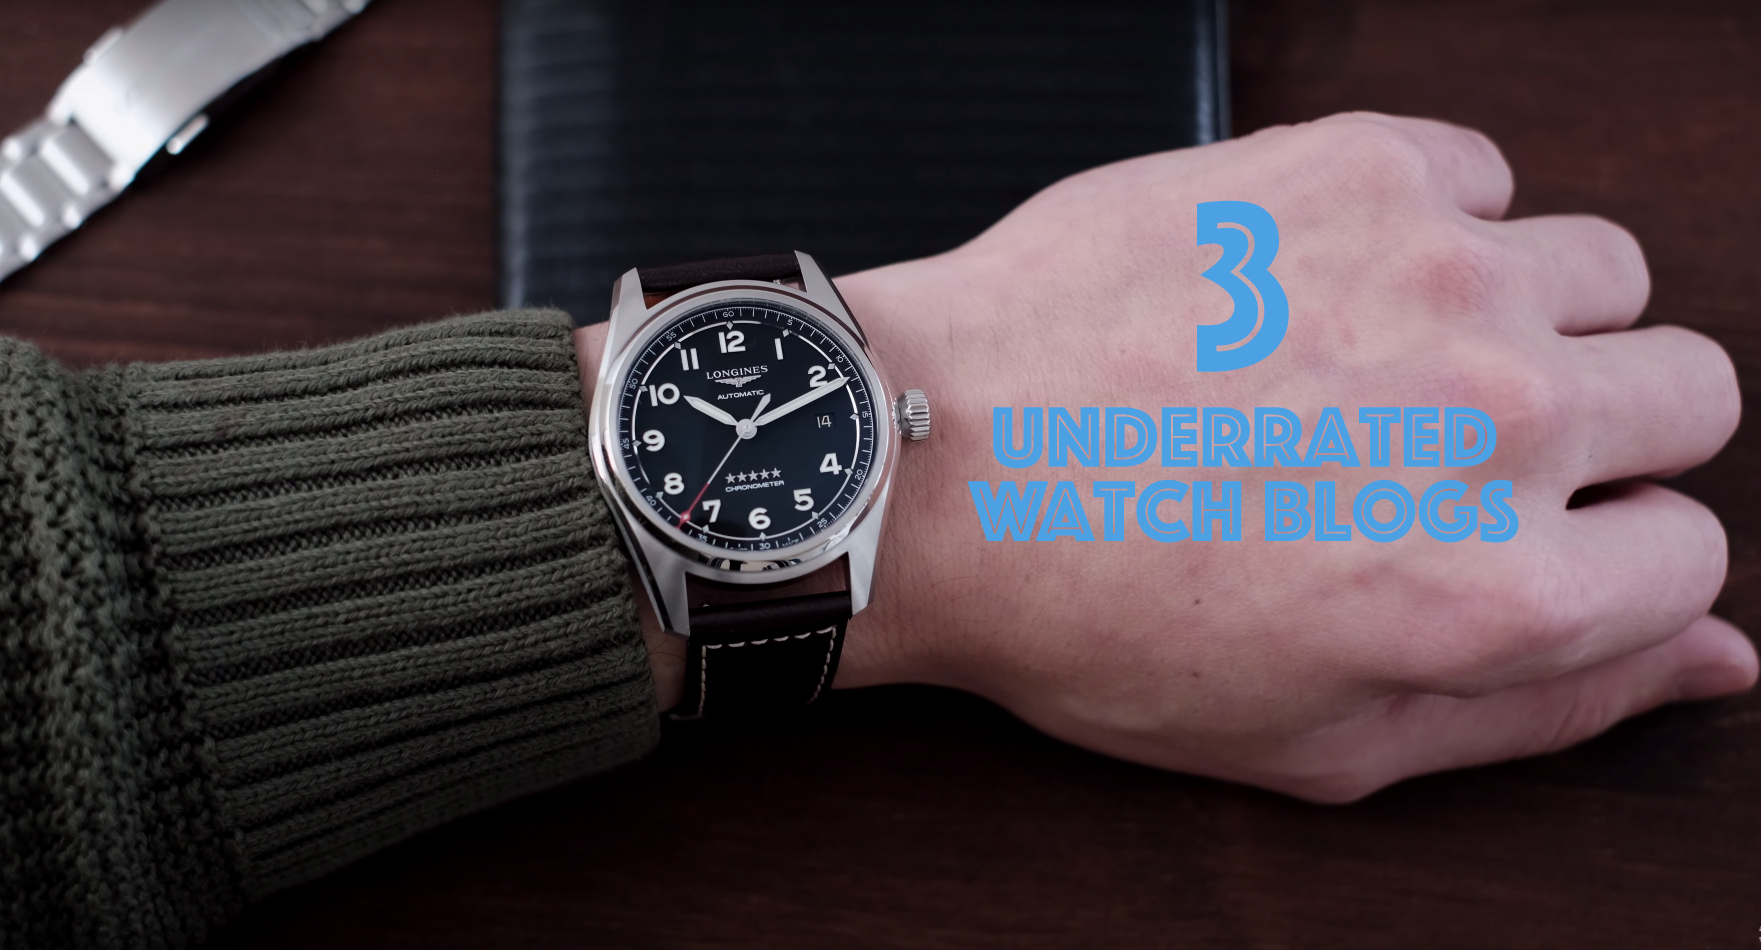 Underrated Watch Blogs That Deserve More Attention